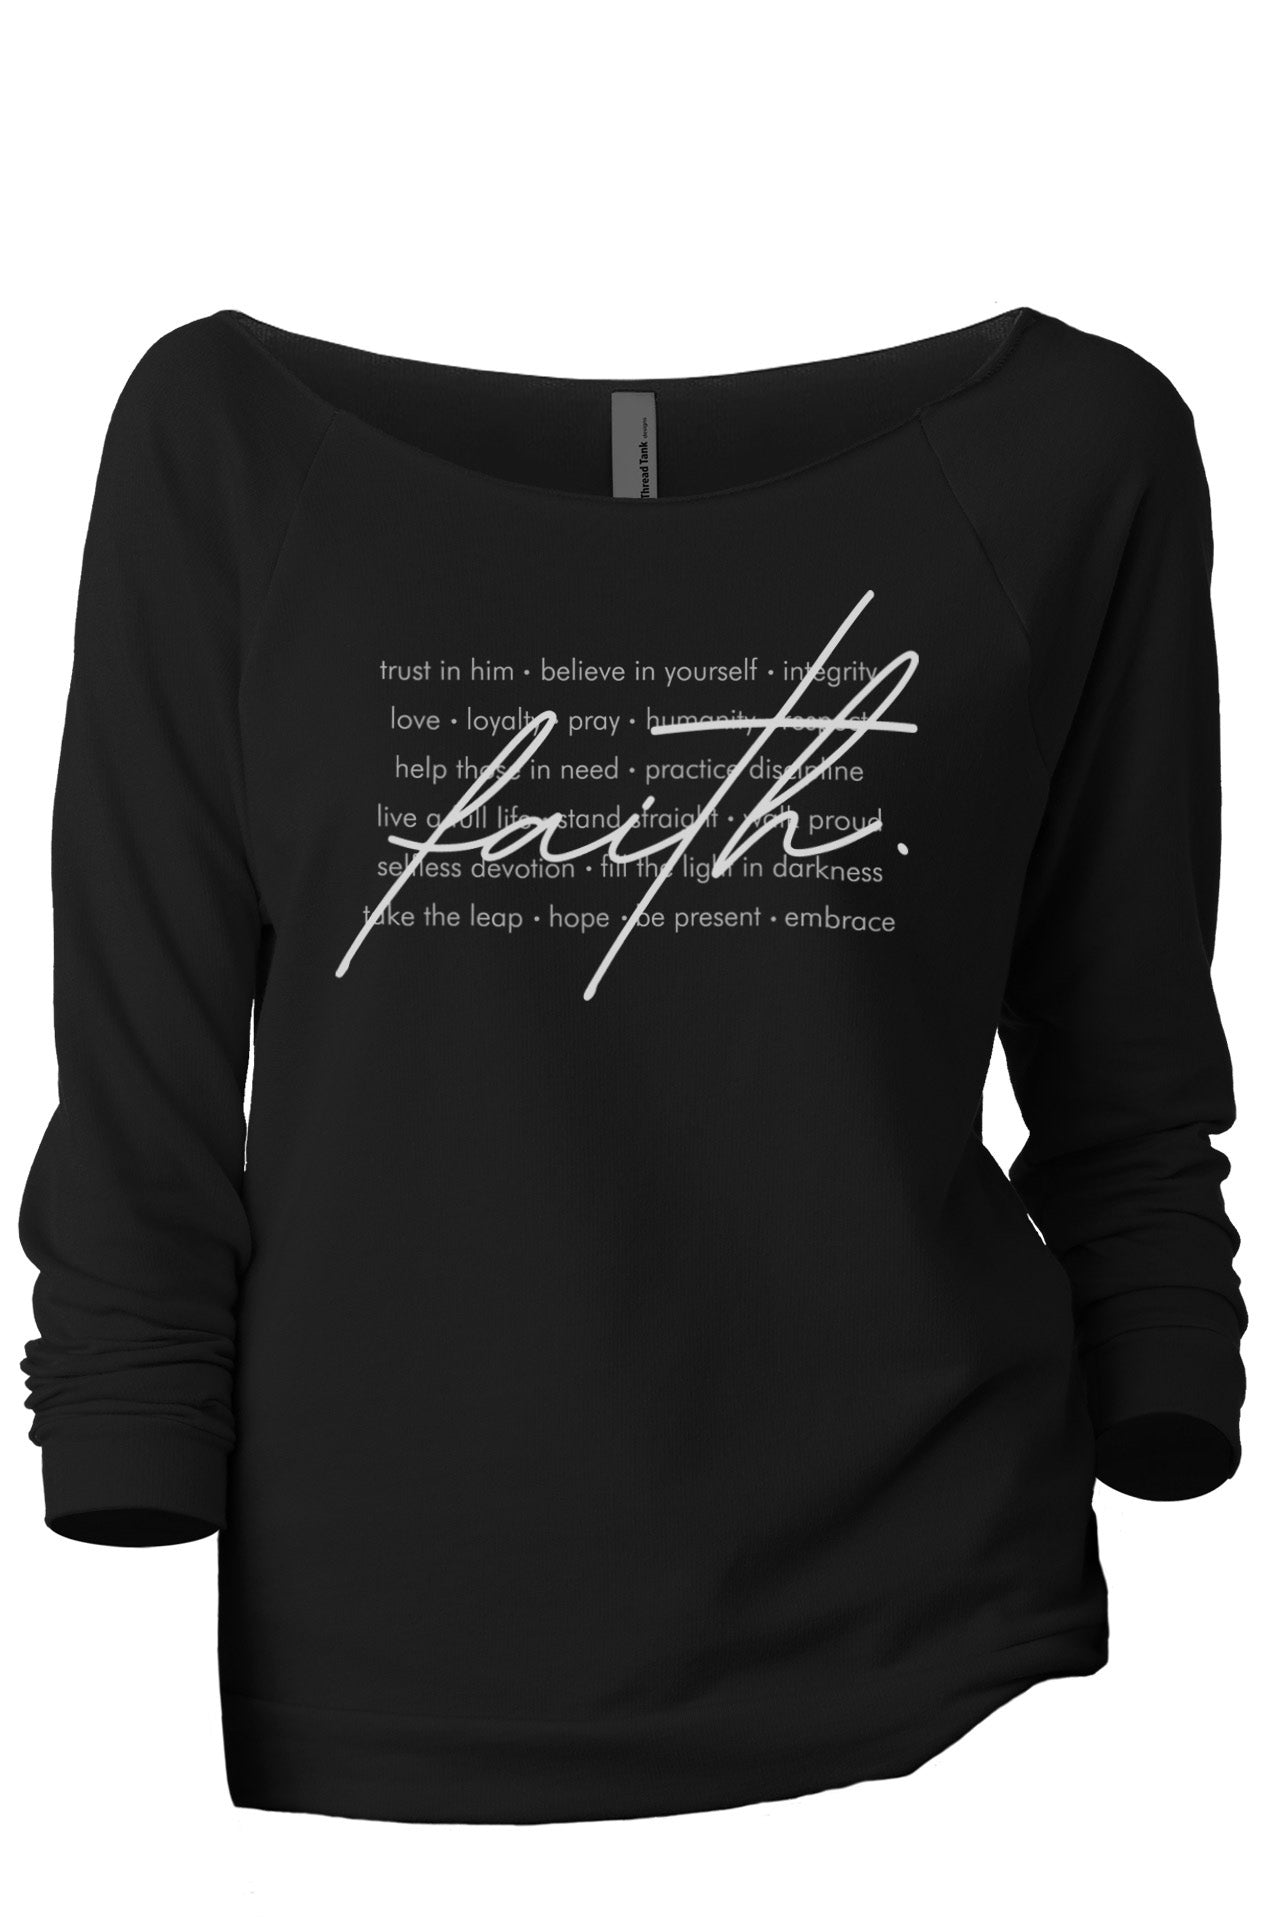 What Is Faith Women's Graphic Printed Lightweight Slouchy 3/4 Sleeves Sweatshirt Sport Black